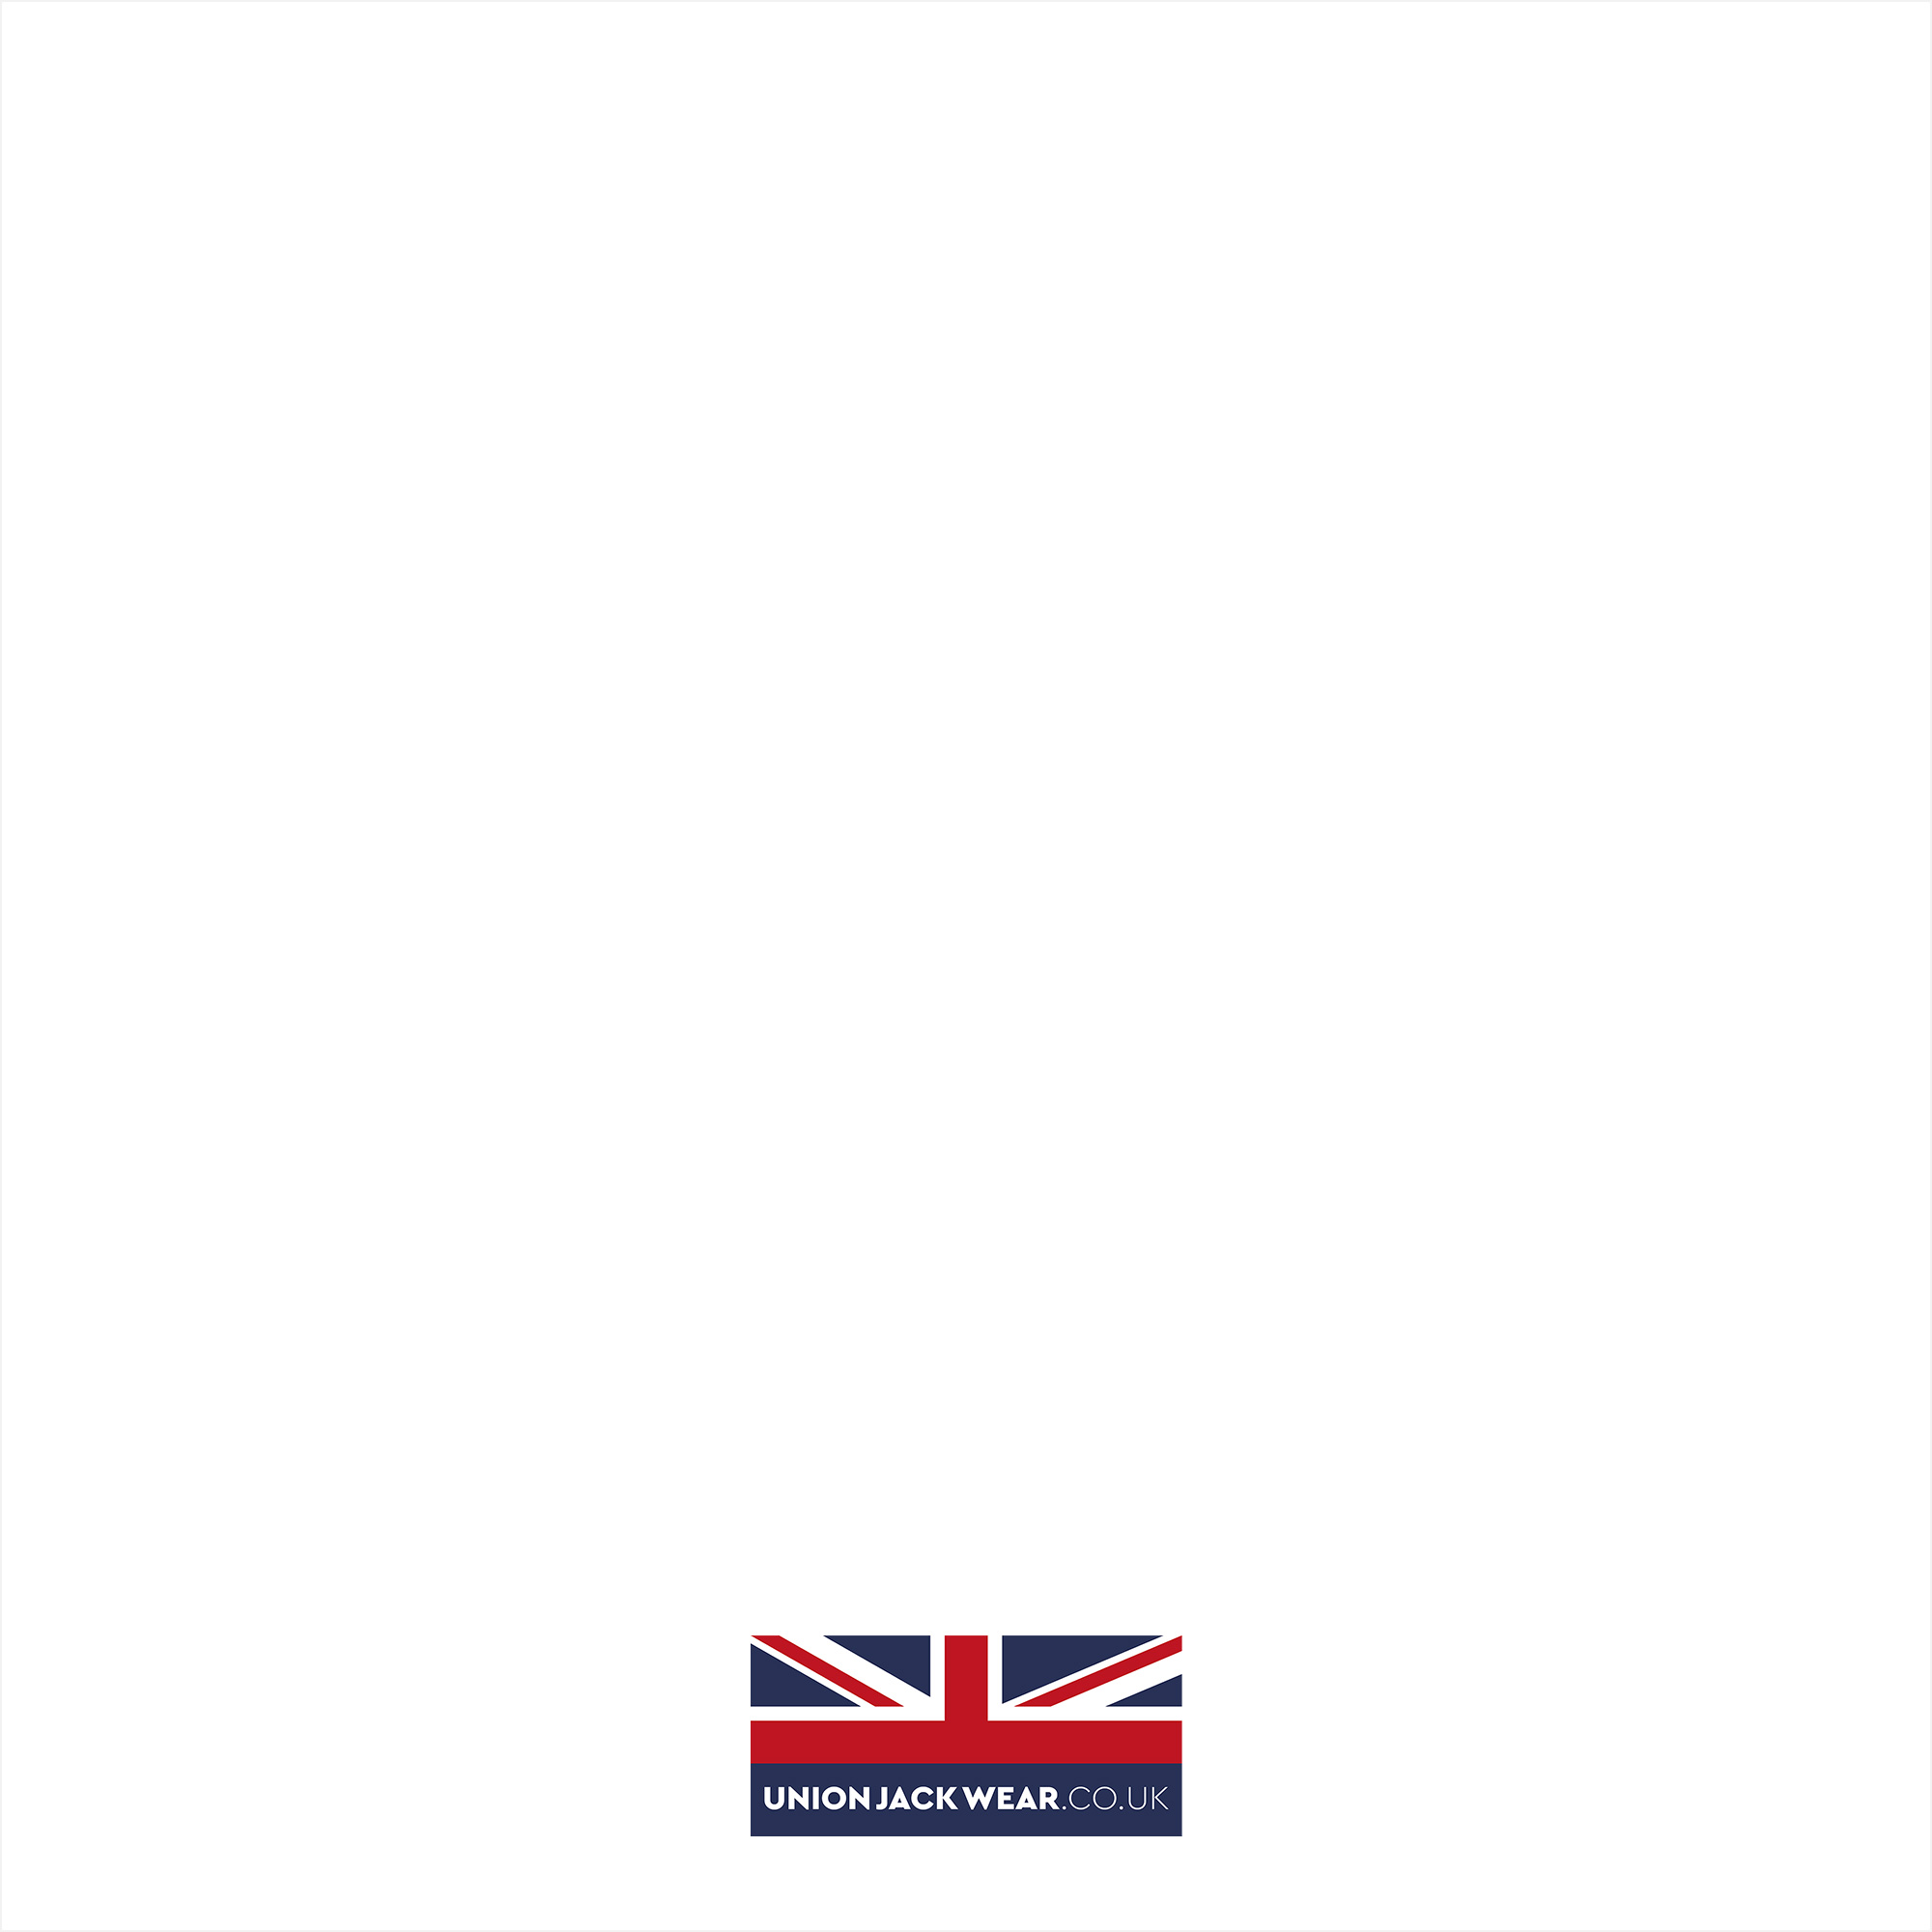 20 Union Jack Wavy Flag Design Cardboard Cups